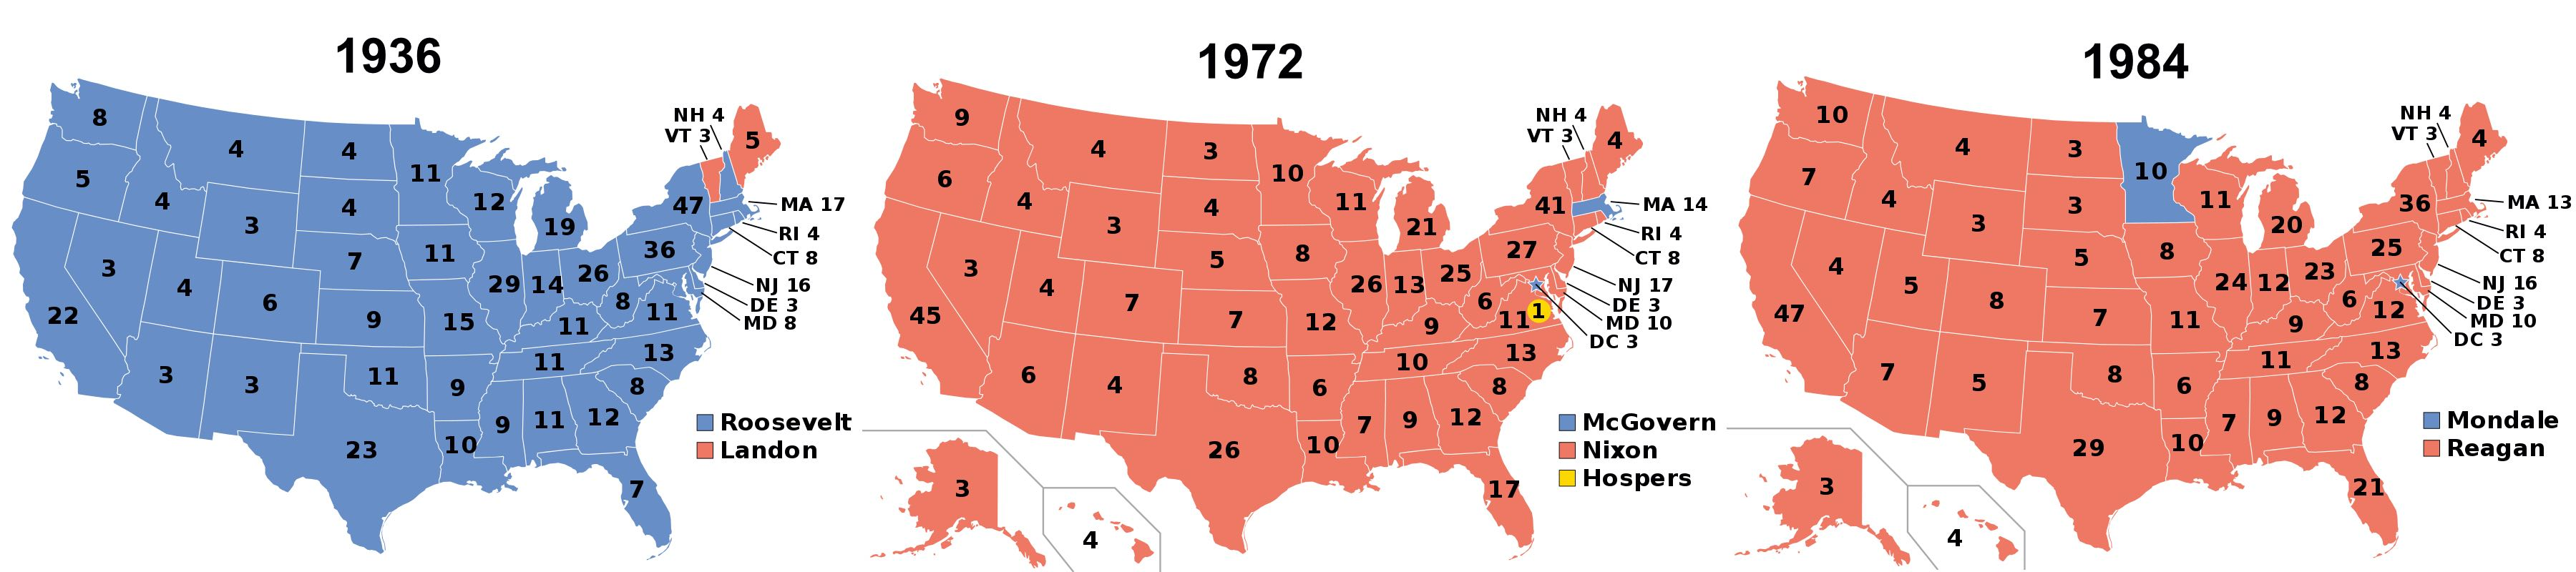 FDR lost just two states (VT and ME) in  1936; Nison lost just one state (MA) plus DC in 1972; Reagan lost just one state (MN) plus DC in 1984